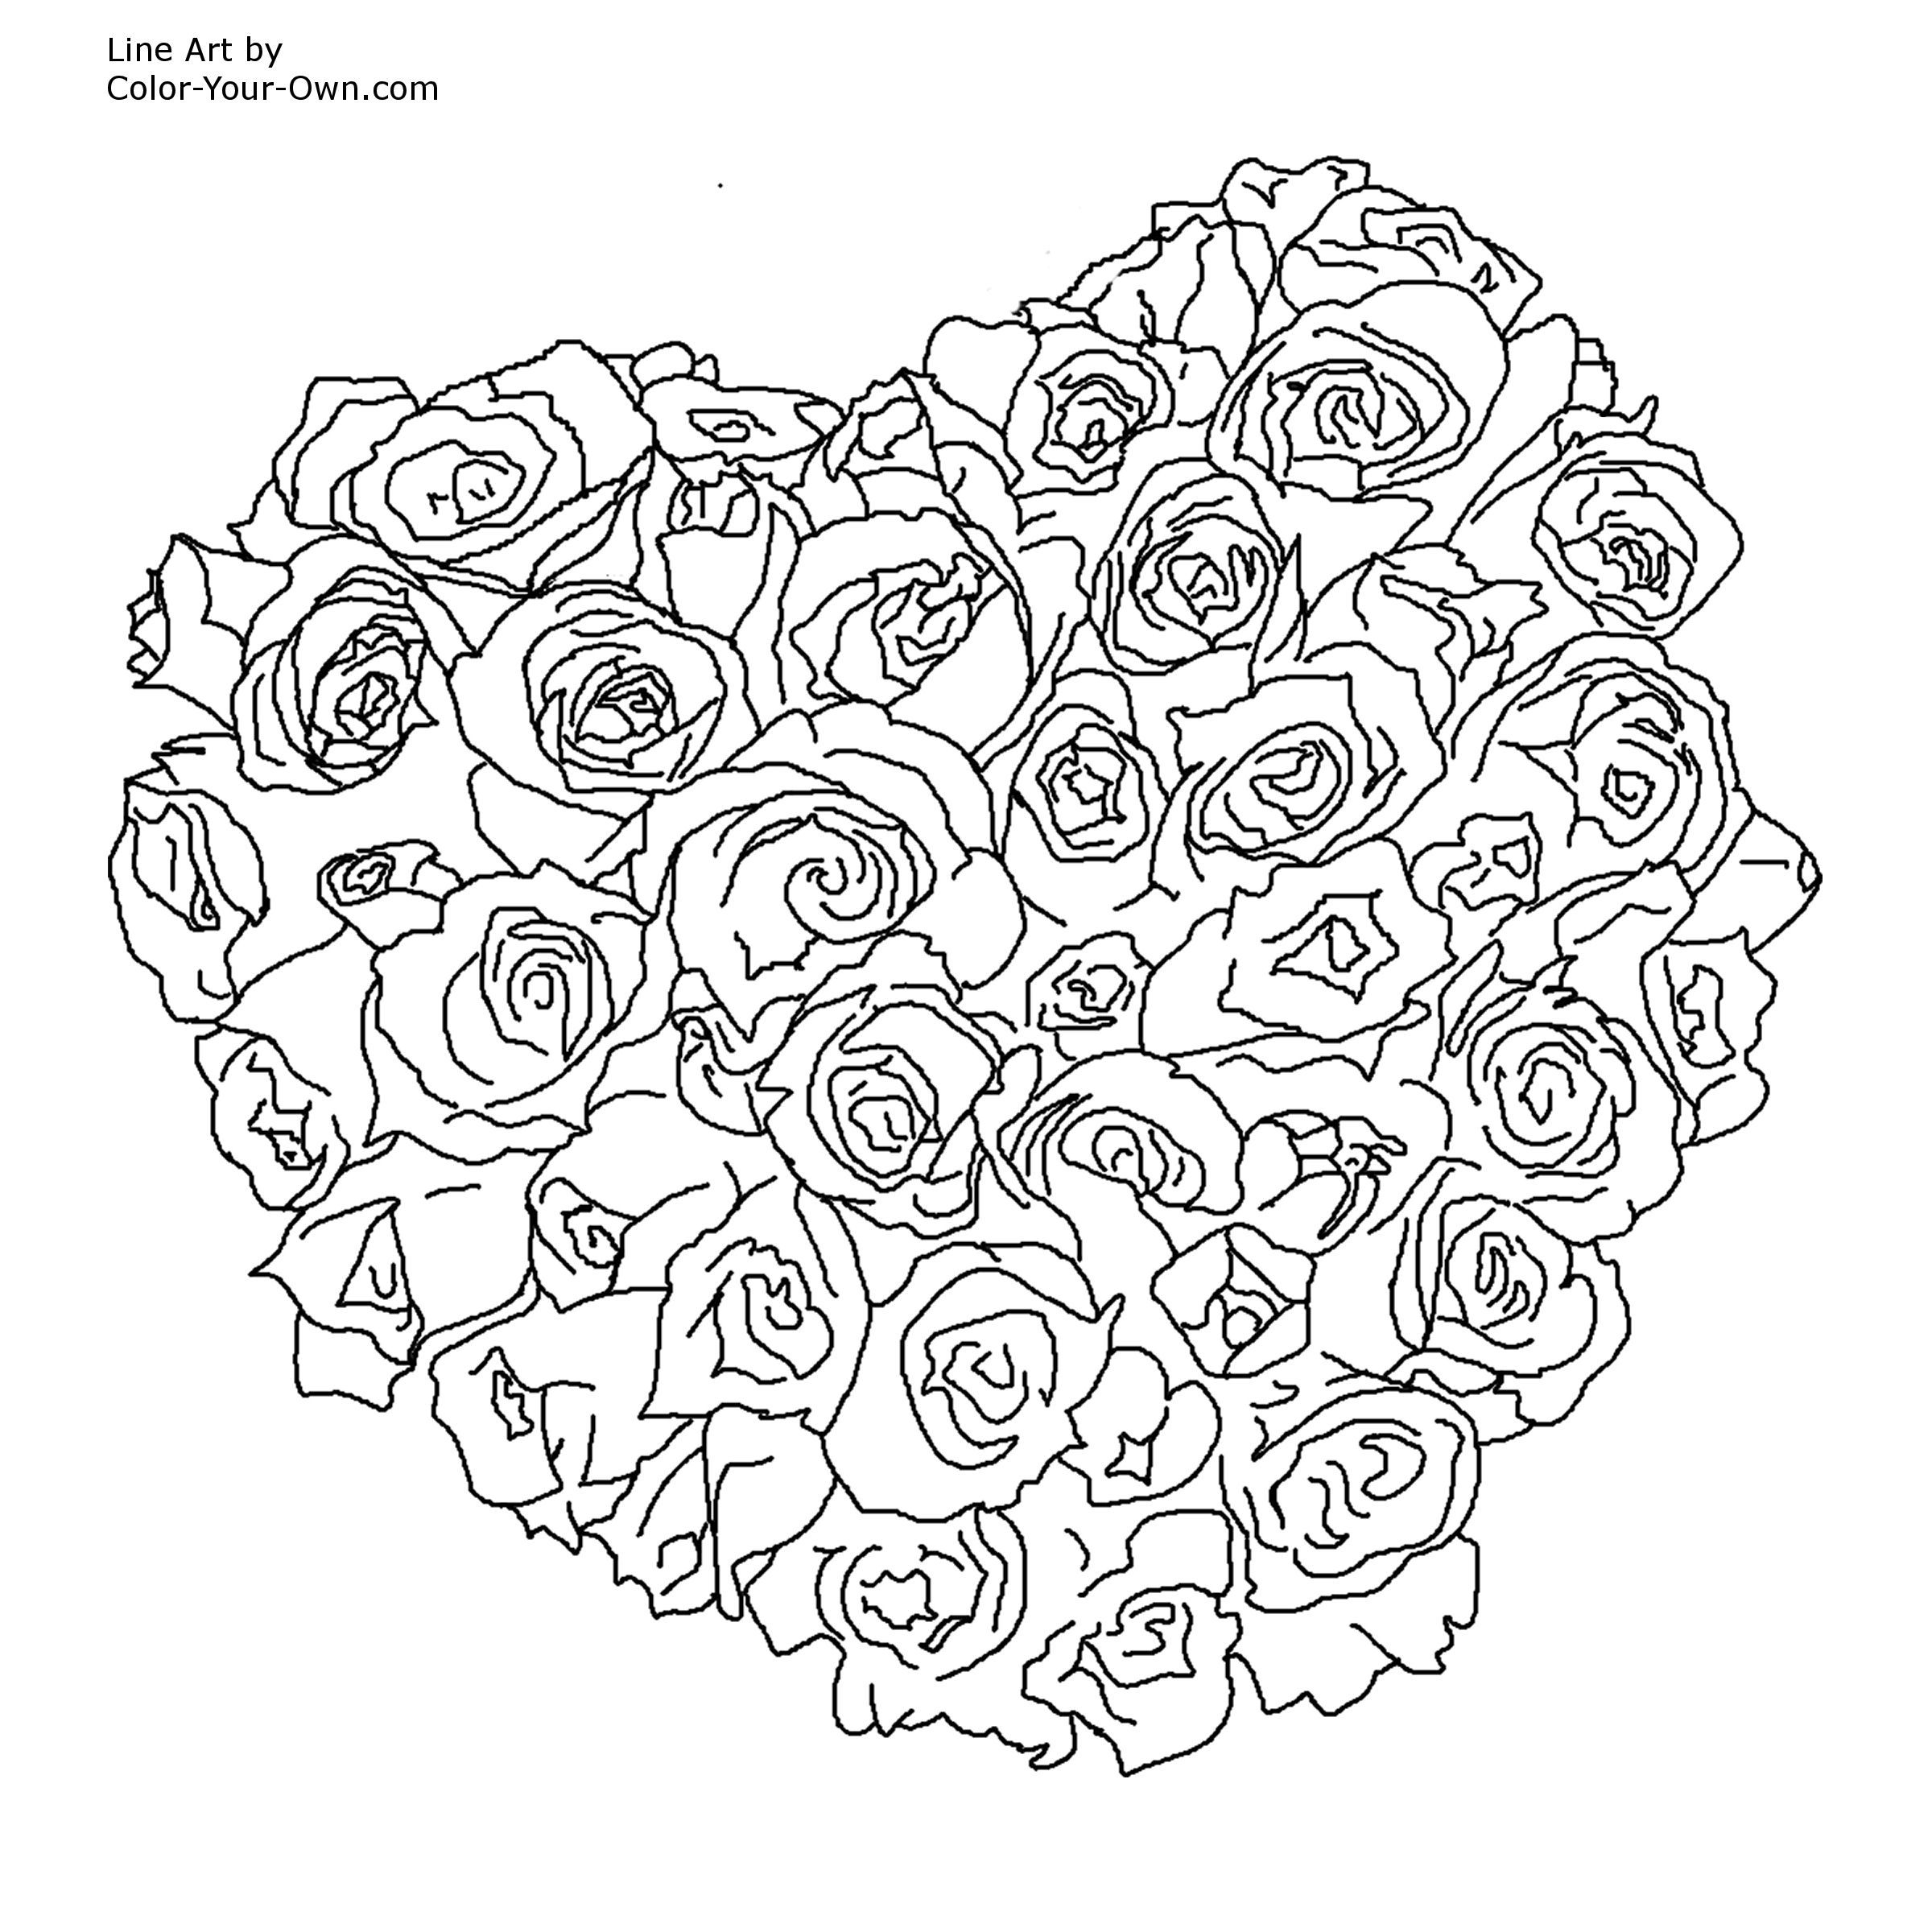 Online coloring hearts - Flowers And Hearts Coloring Pages Printable Coloring Pages Hearts And Flowers Best Coloring Pages 2017 Free